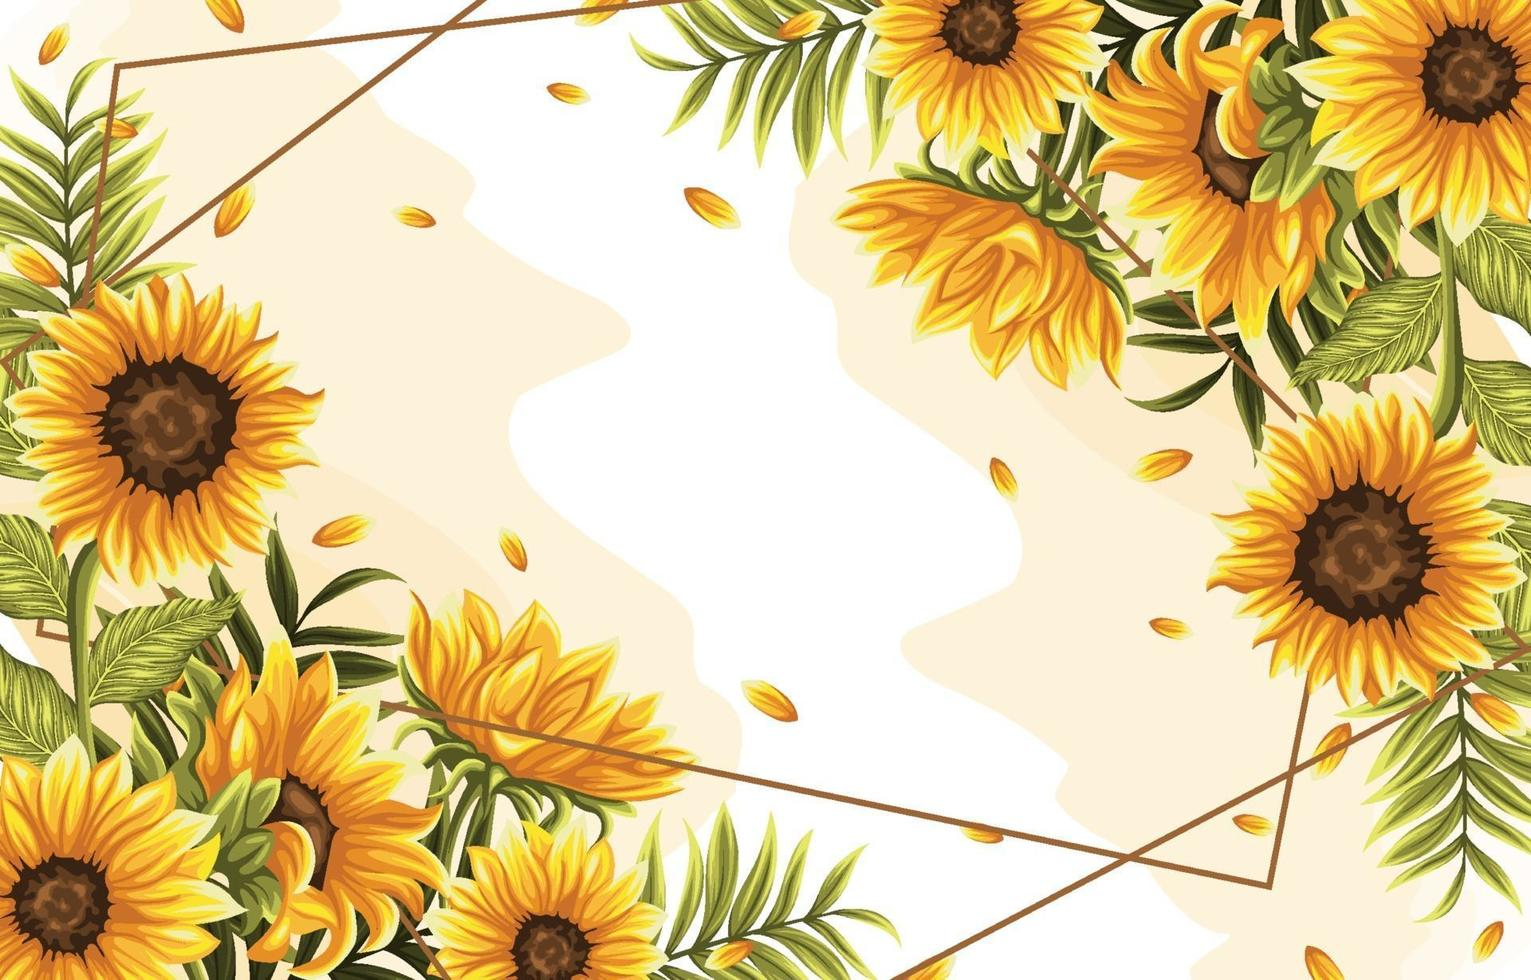 Tropical Flower and Leaves Background vector